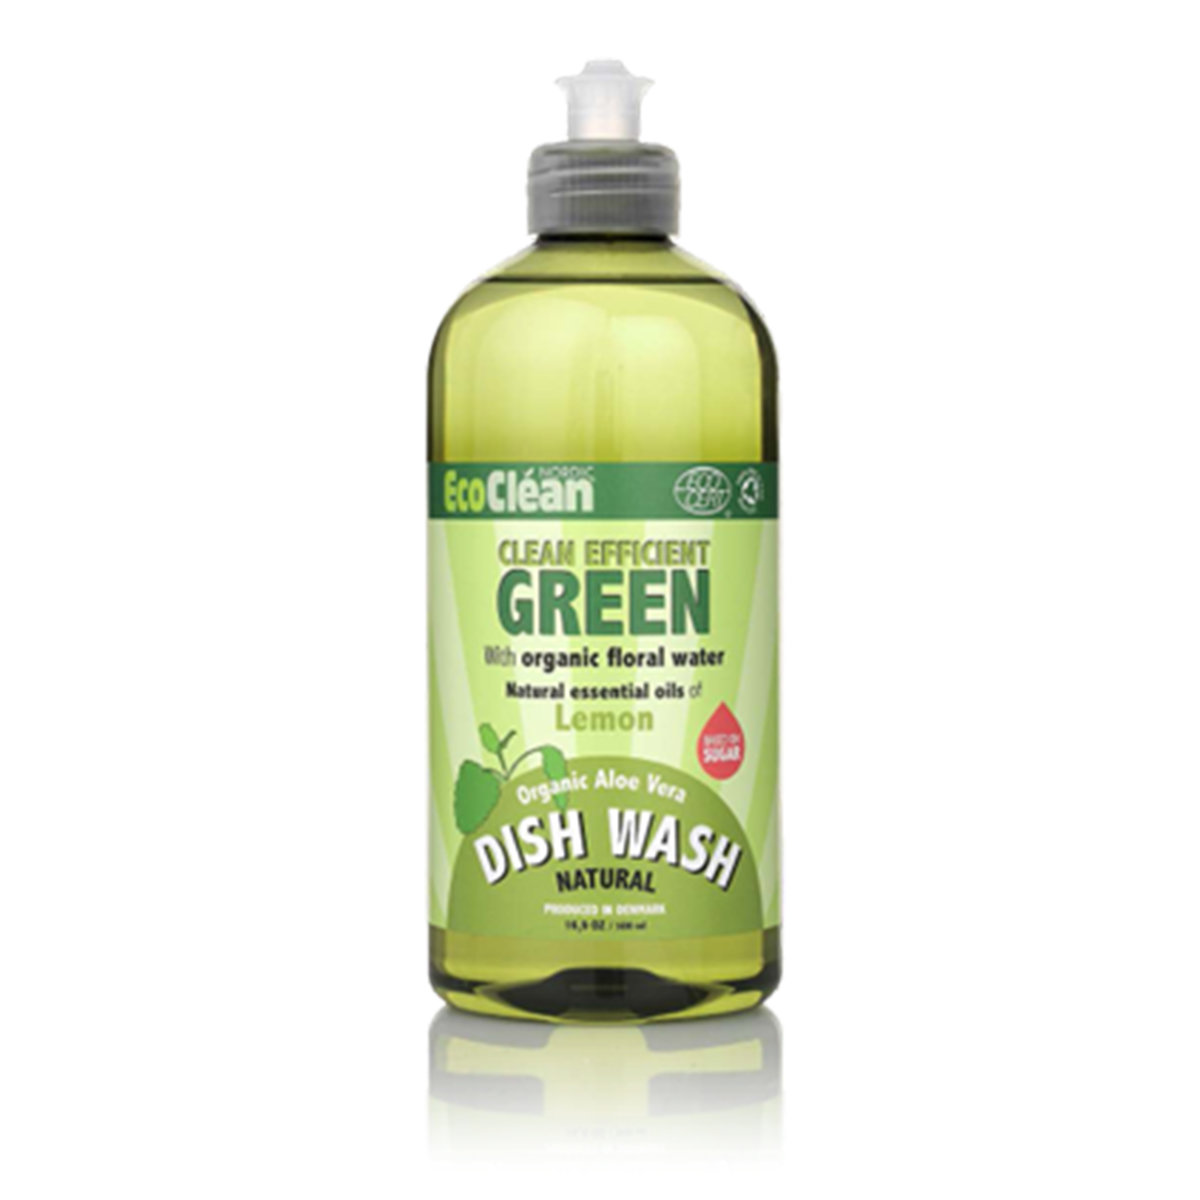 Detergent - EcoClean Nordic Natural Dish Wash (Free & Clear)